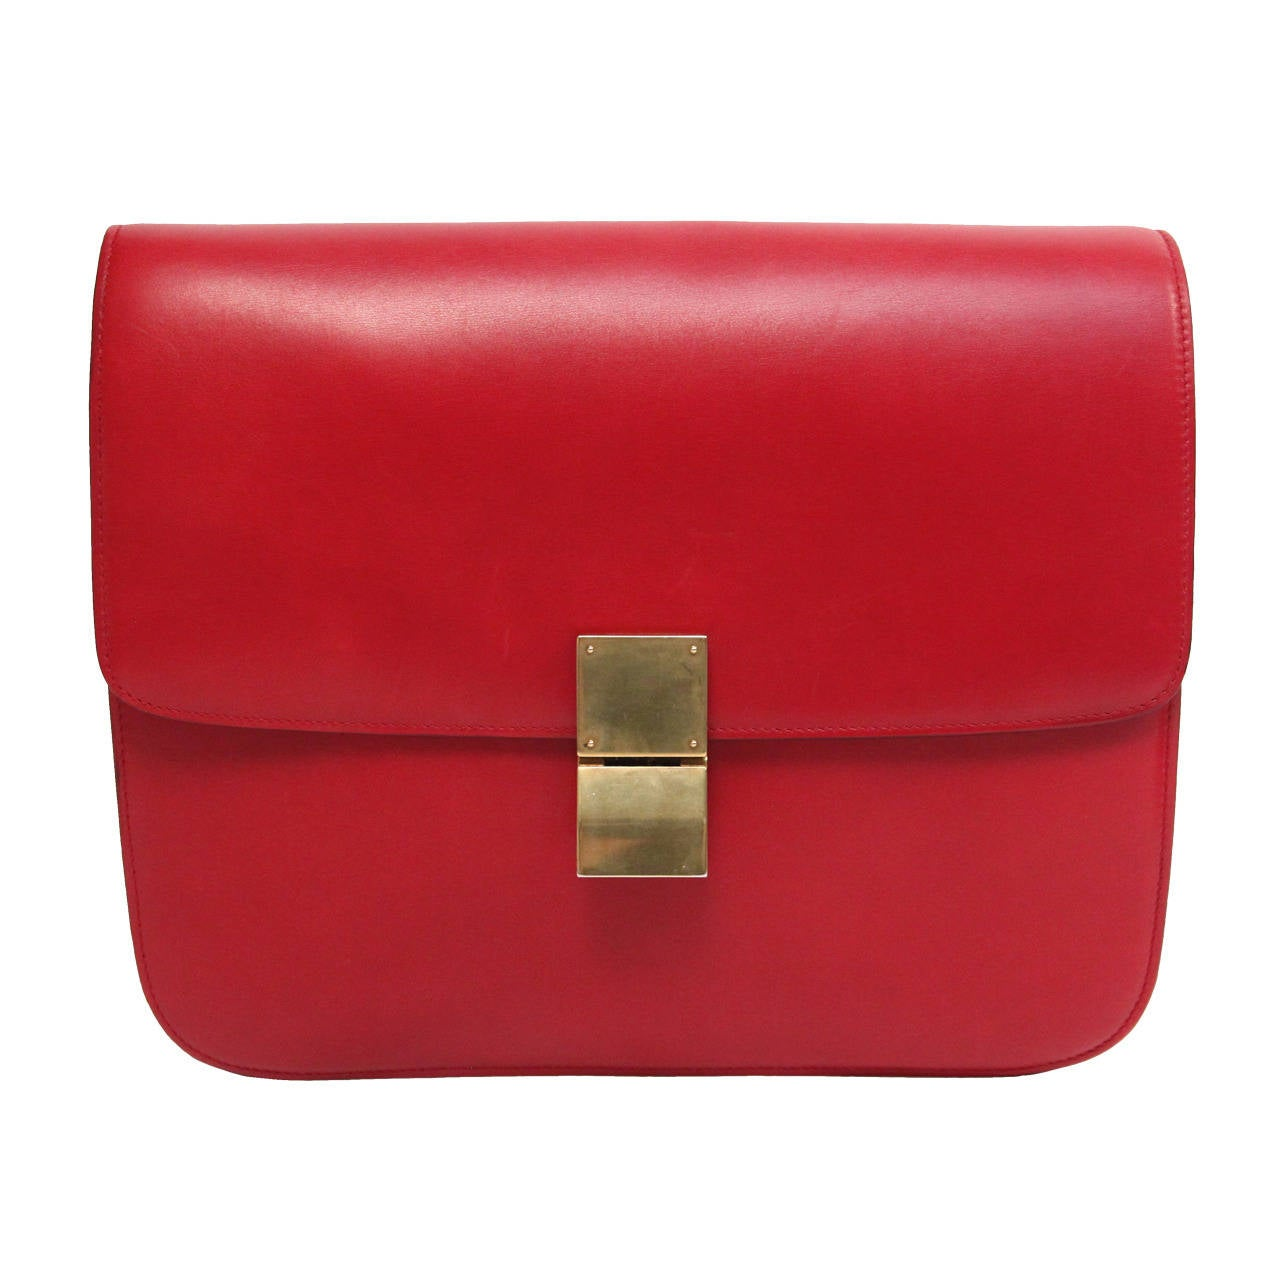 752b14d7ac Celine large red classic box leather bag with convertible strap For Sale at  1stdibs